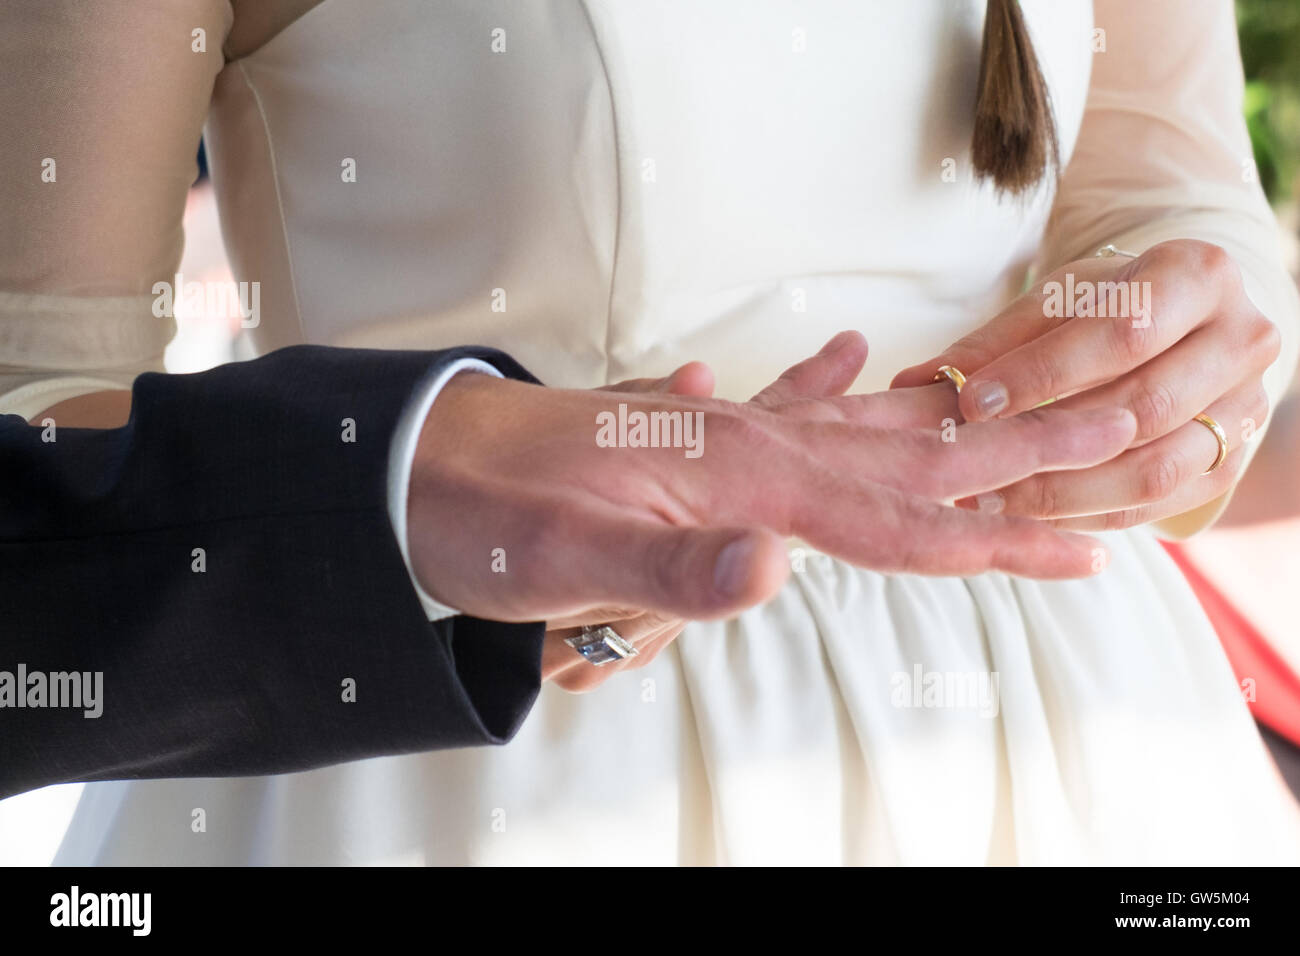 Wedding Ring Exchange By The Bride Main Focus On The Woman Hand